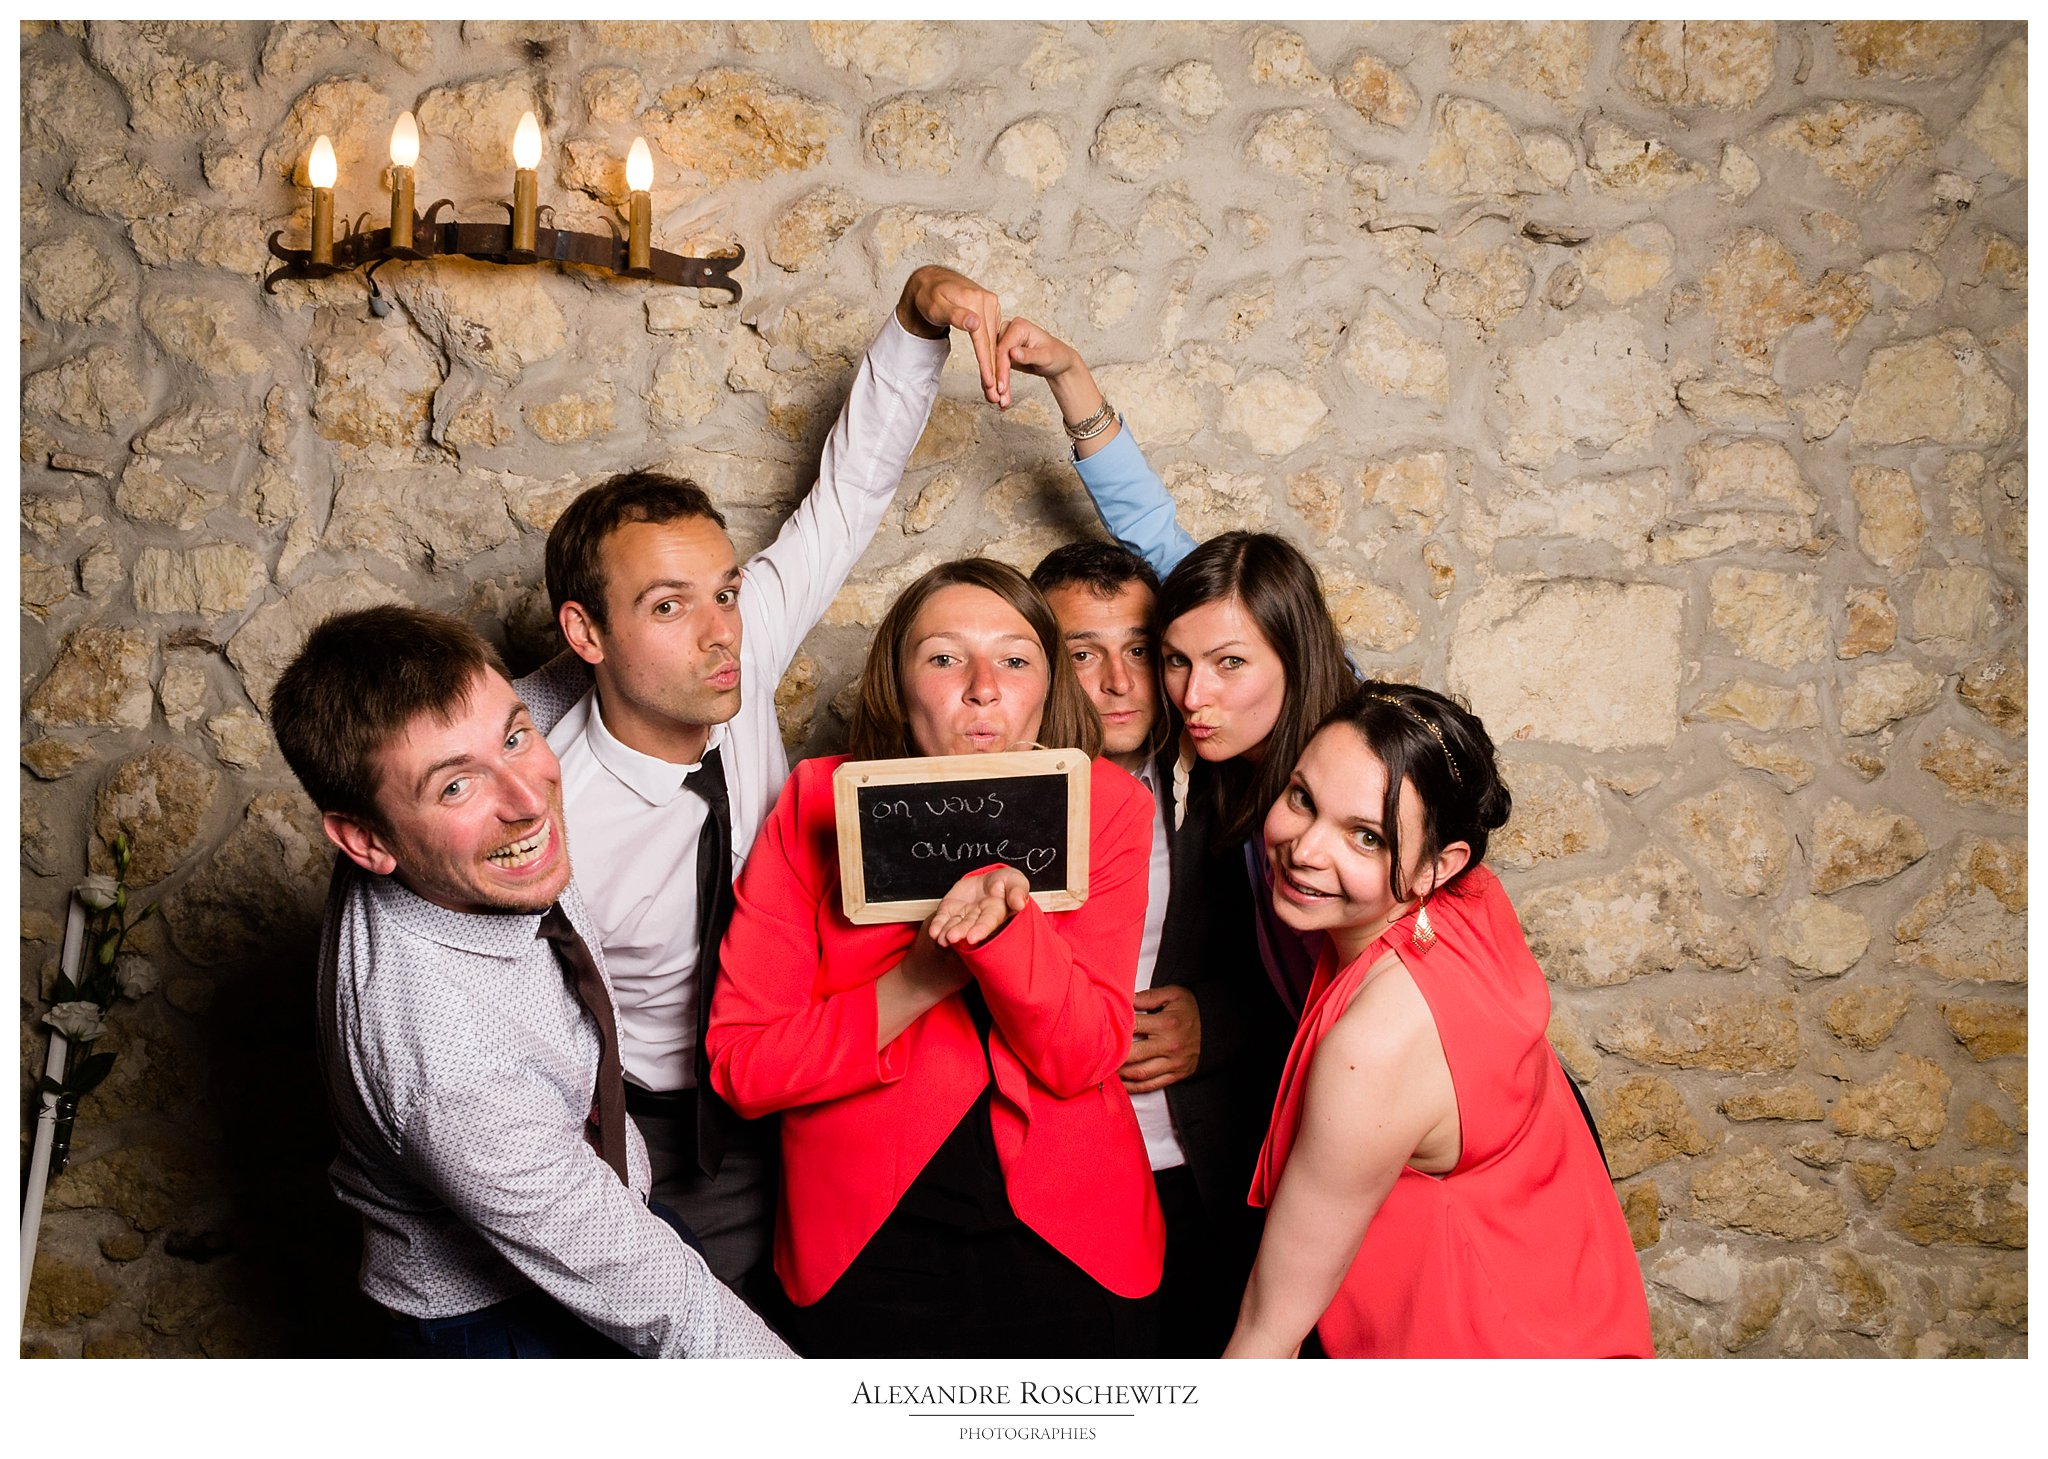 photobooth-mariage-merignac-gironde-maud-anthony-chateau-cujac-alexandre-roschewitz-photographies_1379_2048px